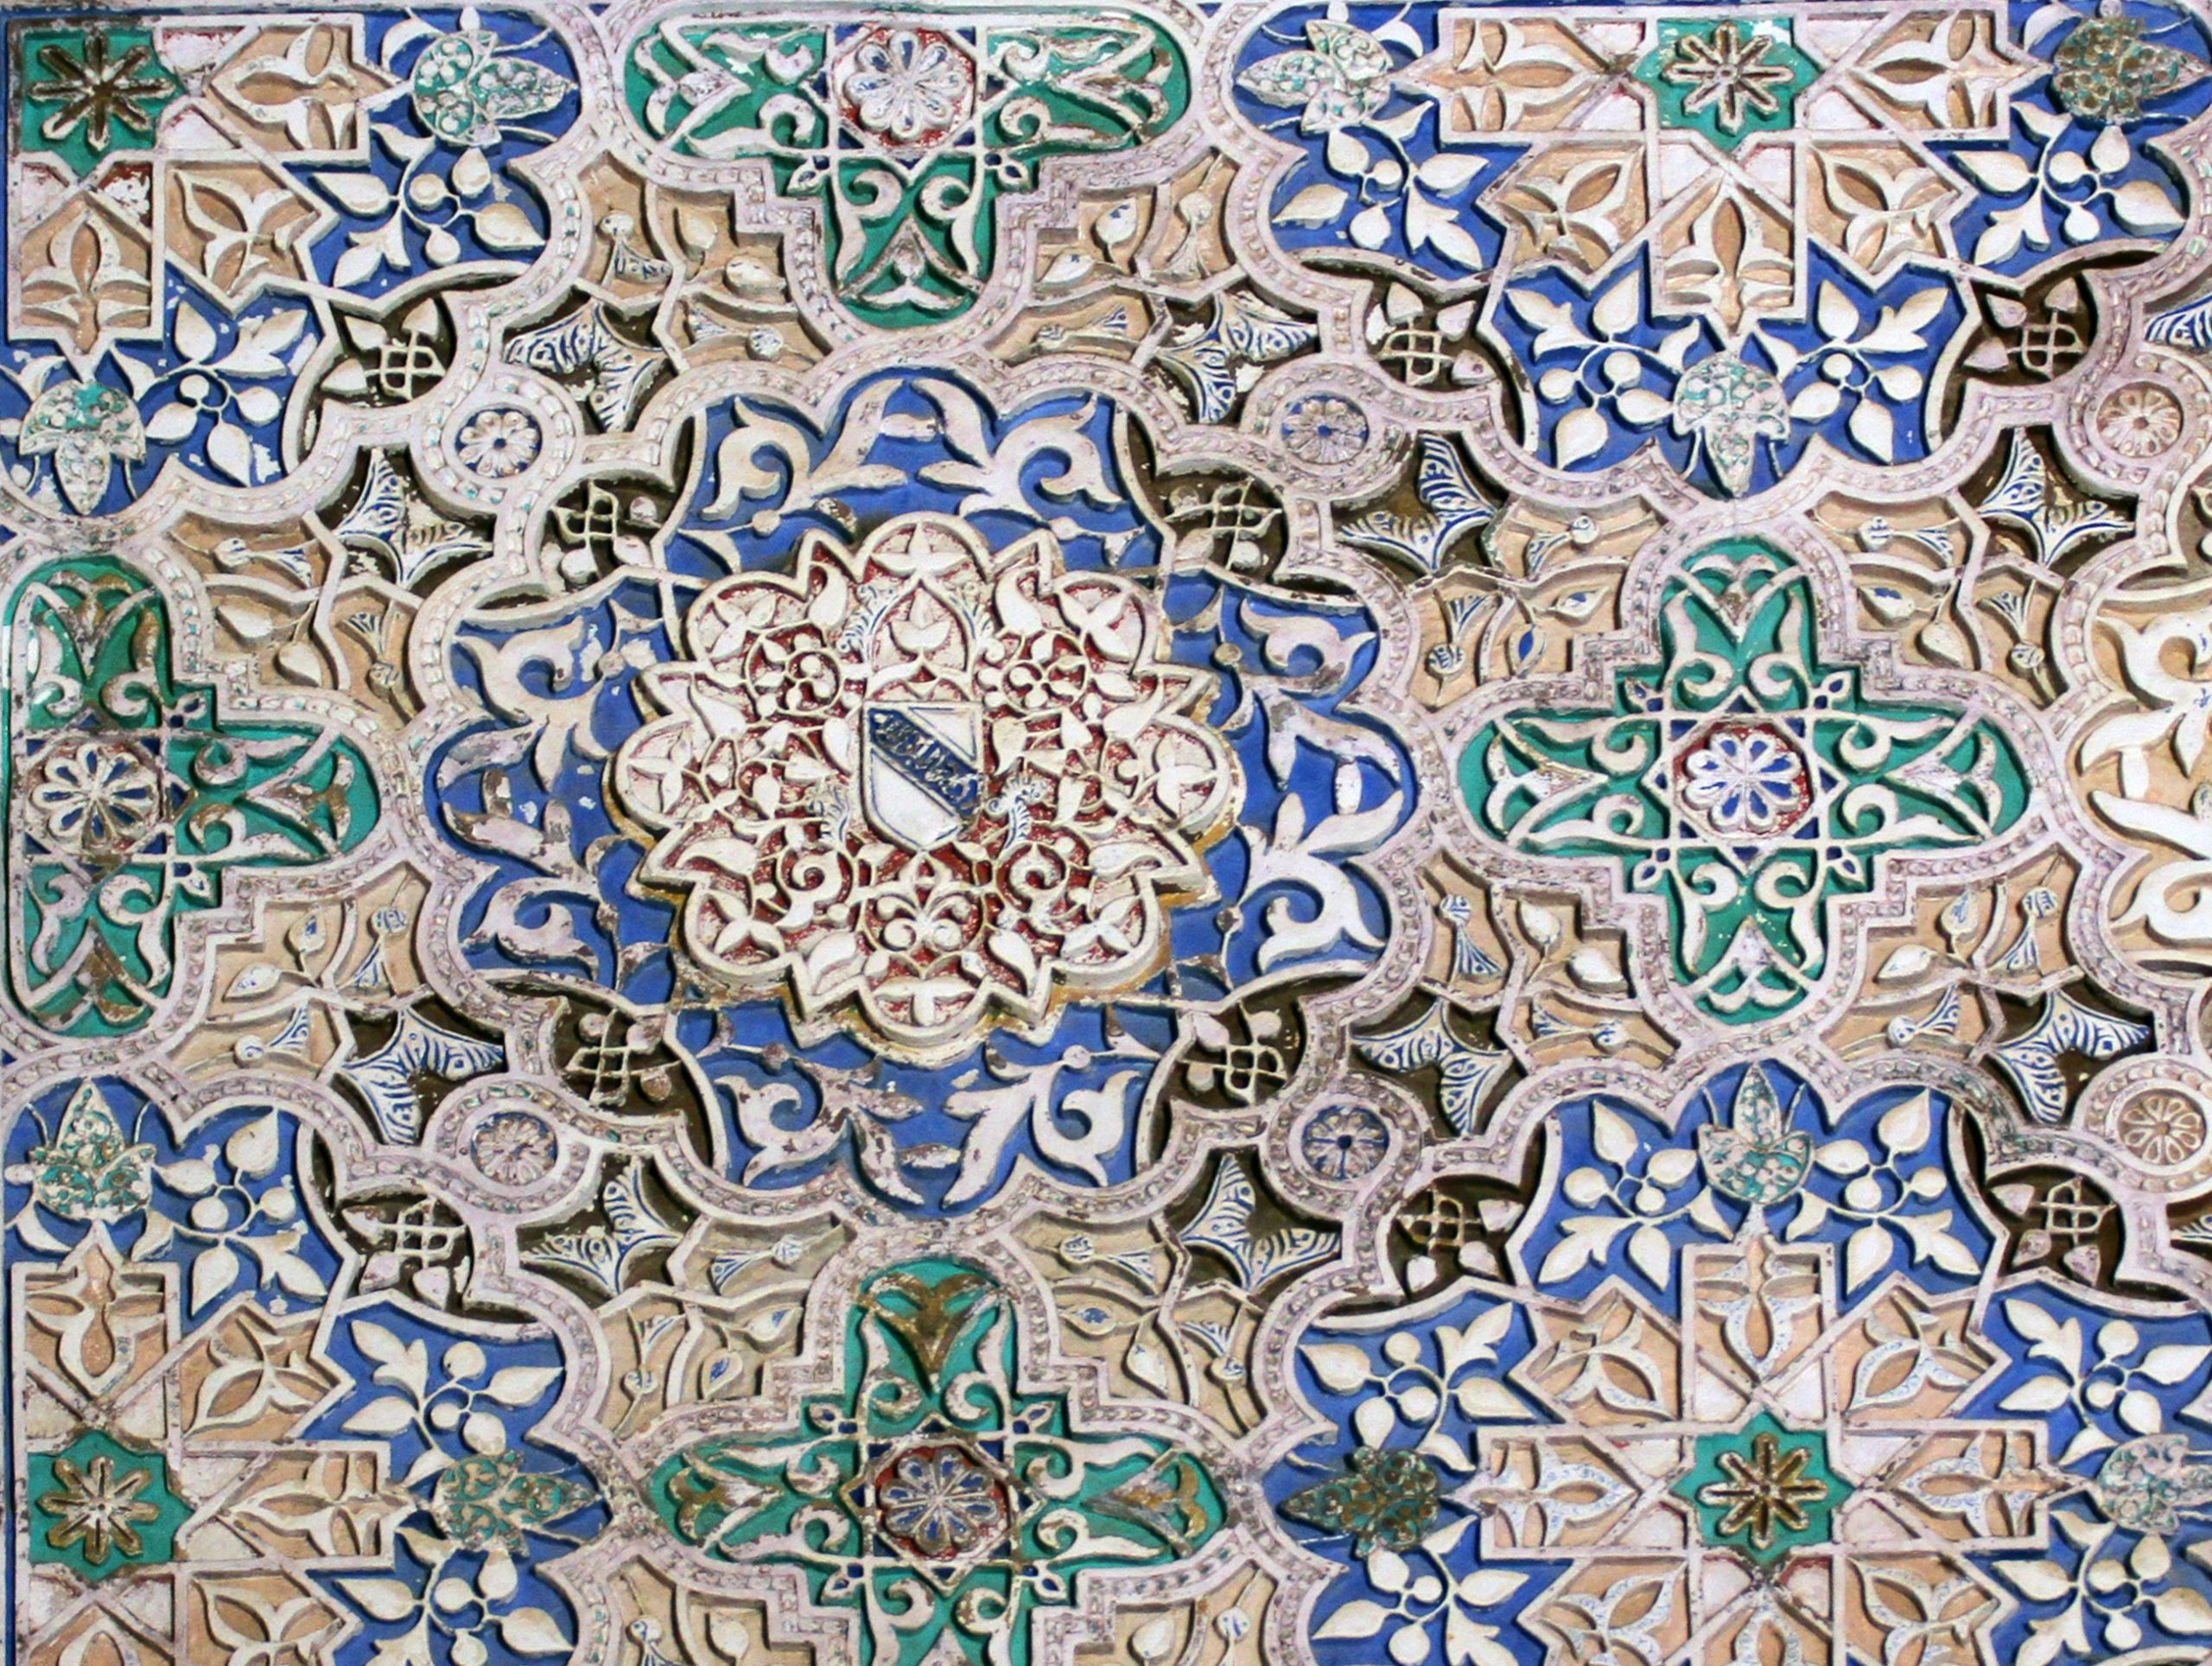 Decoration in the Alhambra, Granada. Courtesy of Tony Hisgett under a Creative Commons license.